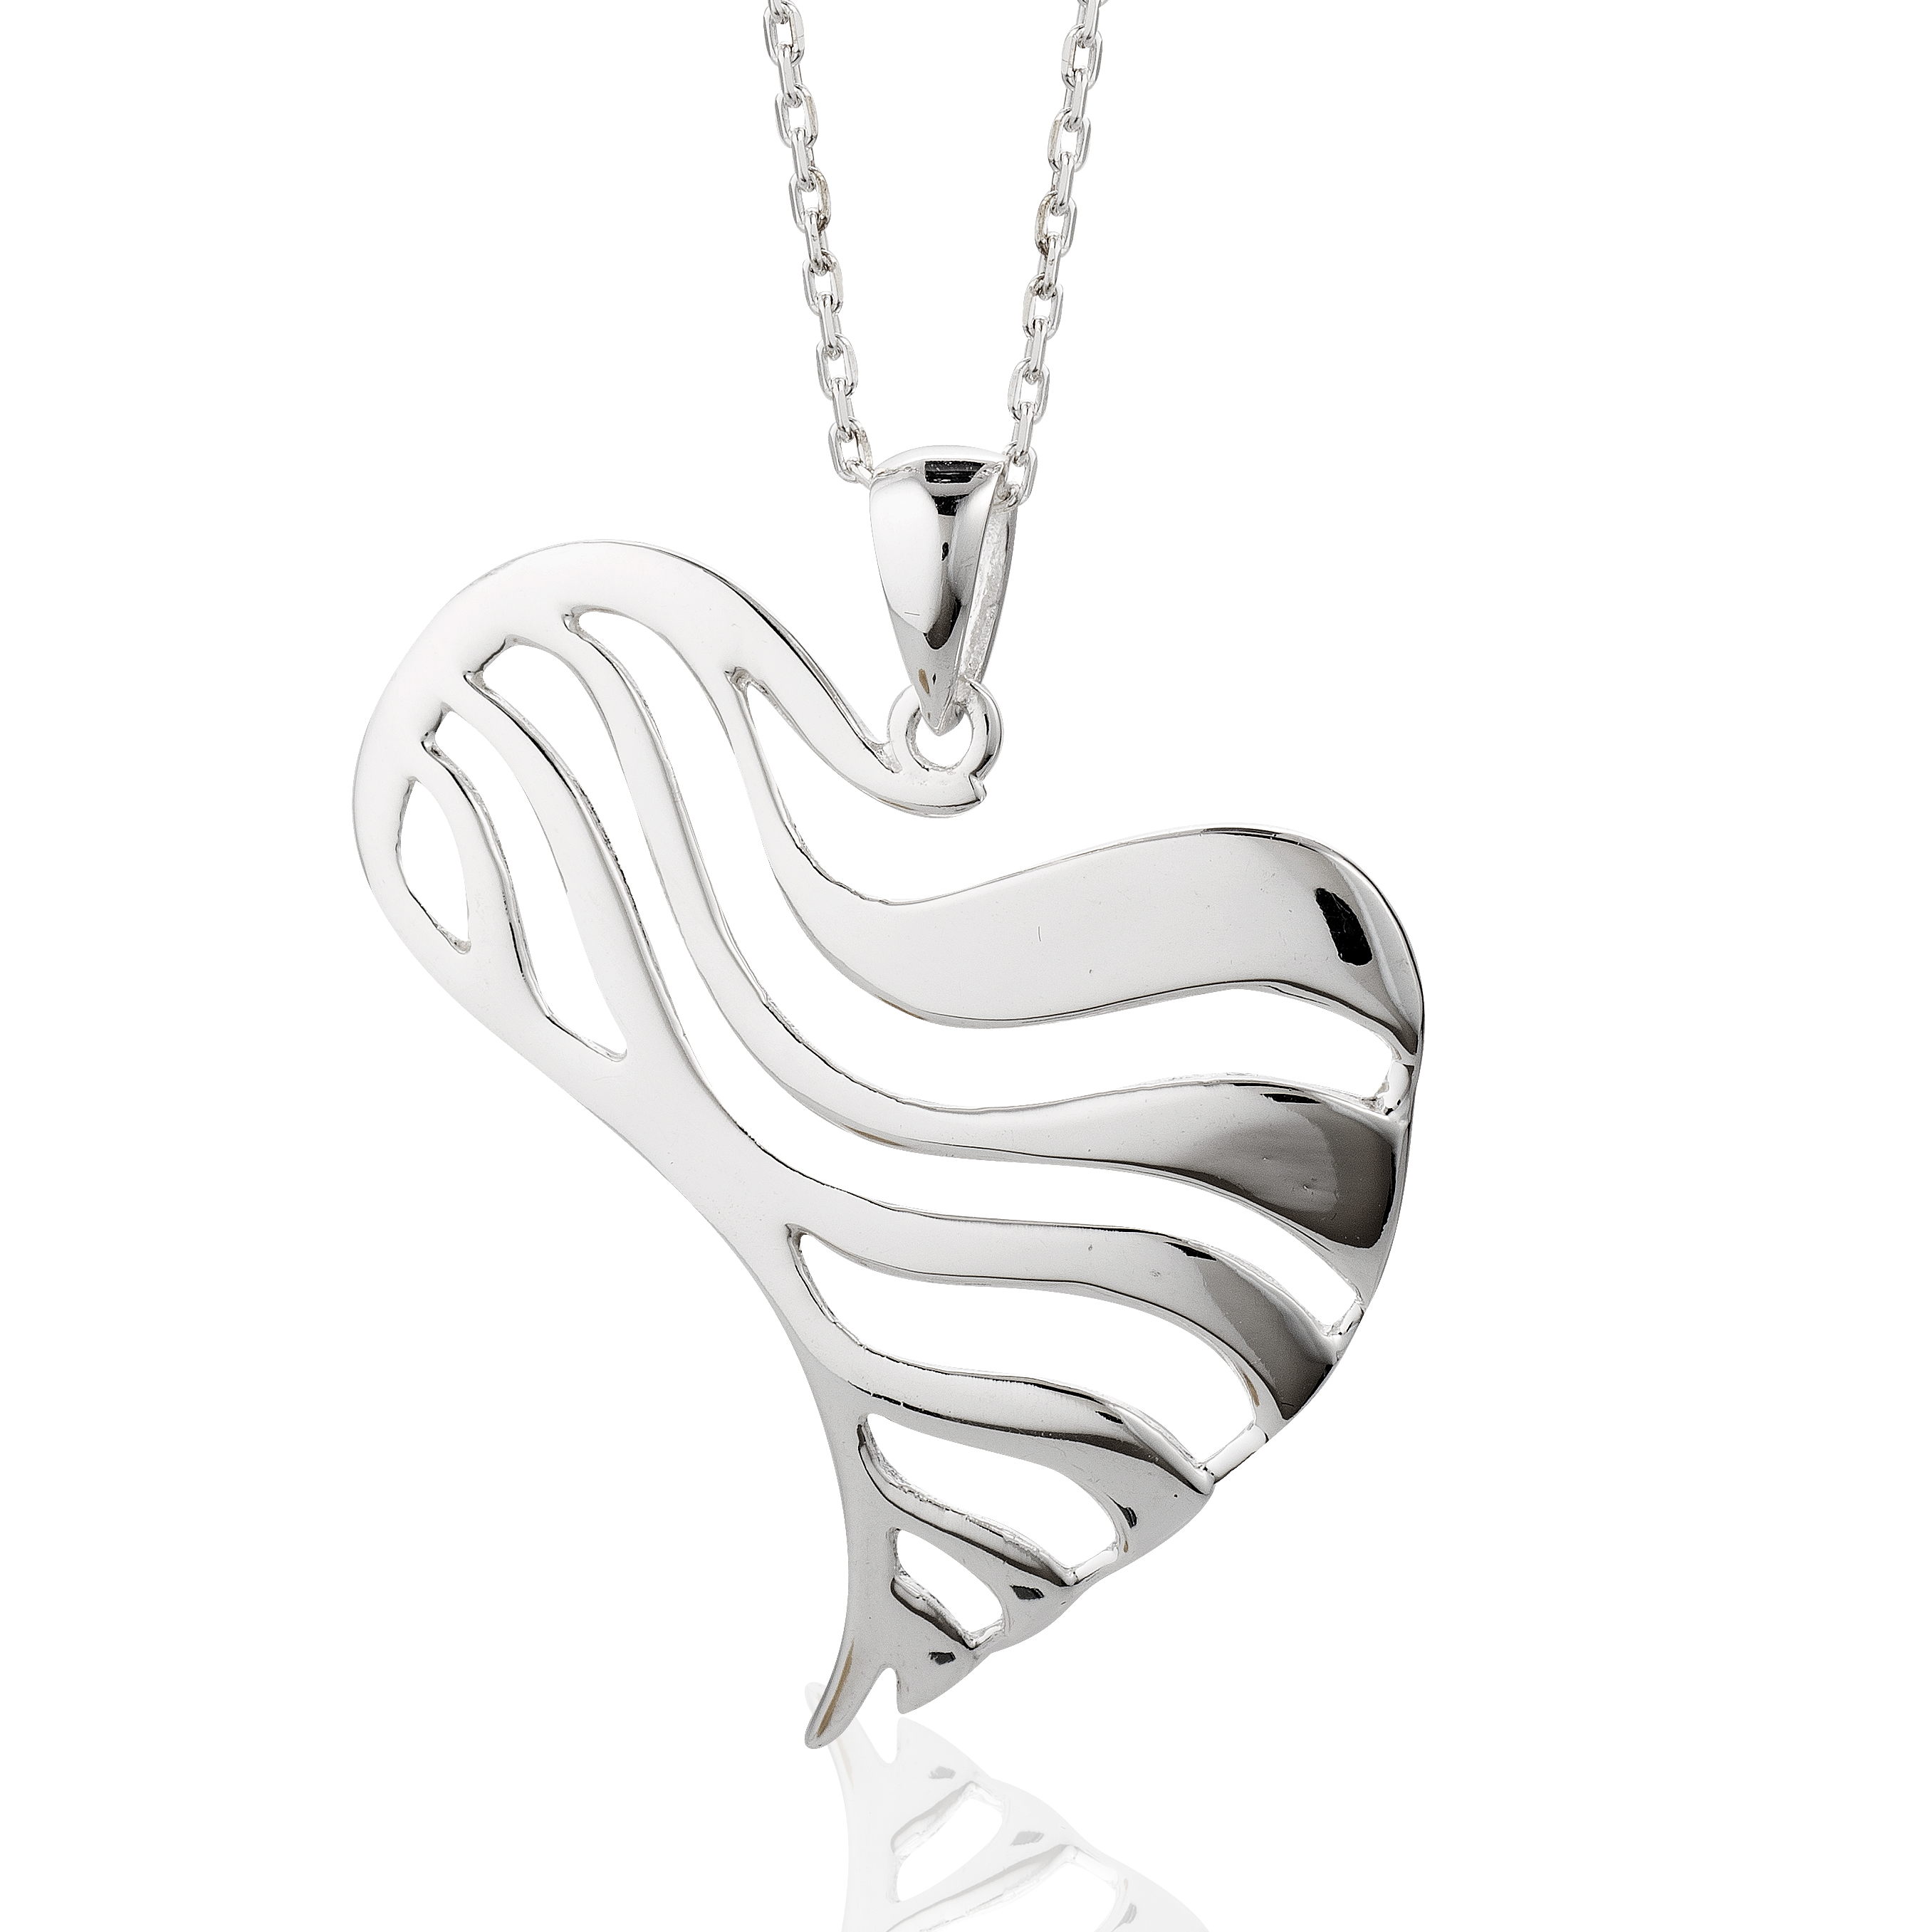 925 Silver Plated Wide Abstract Open Wave Heart Pendant Necklace, Love Jewelry For Women, Girls